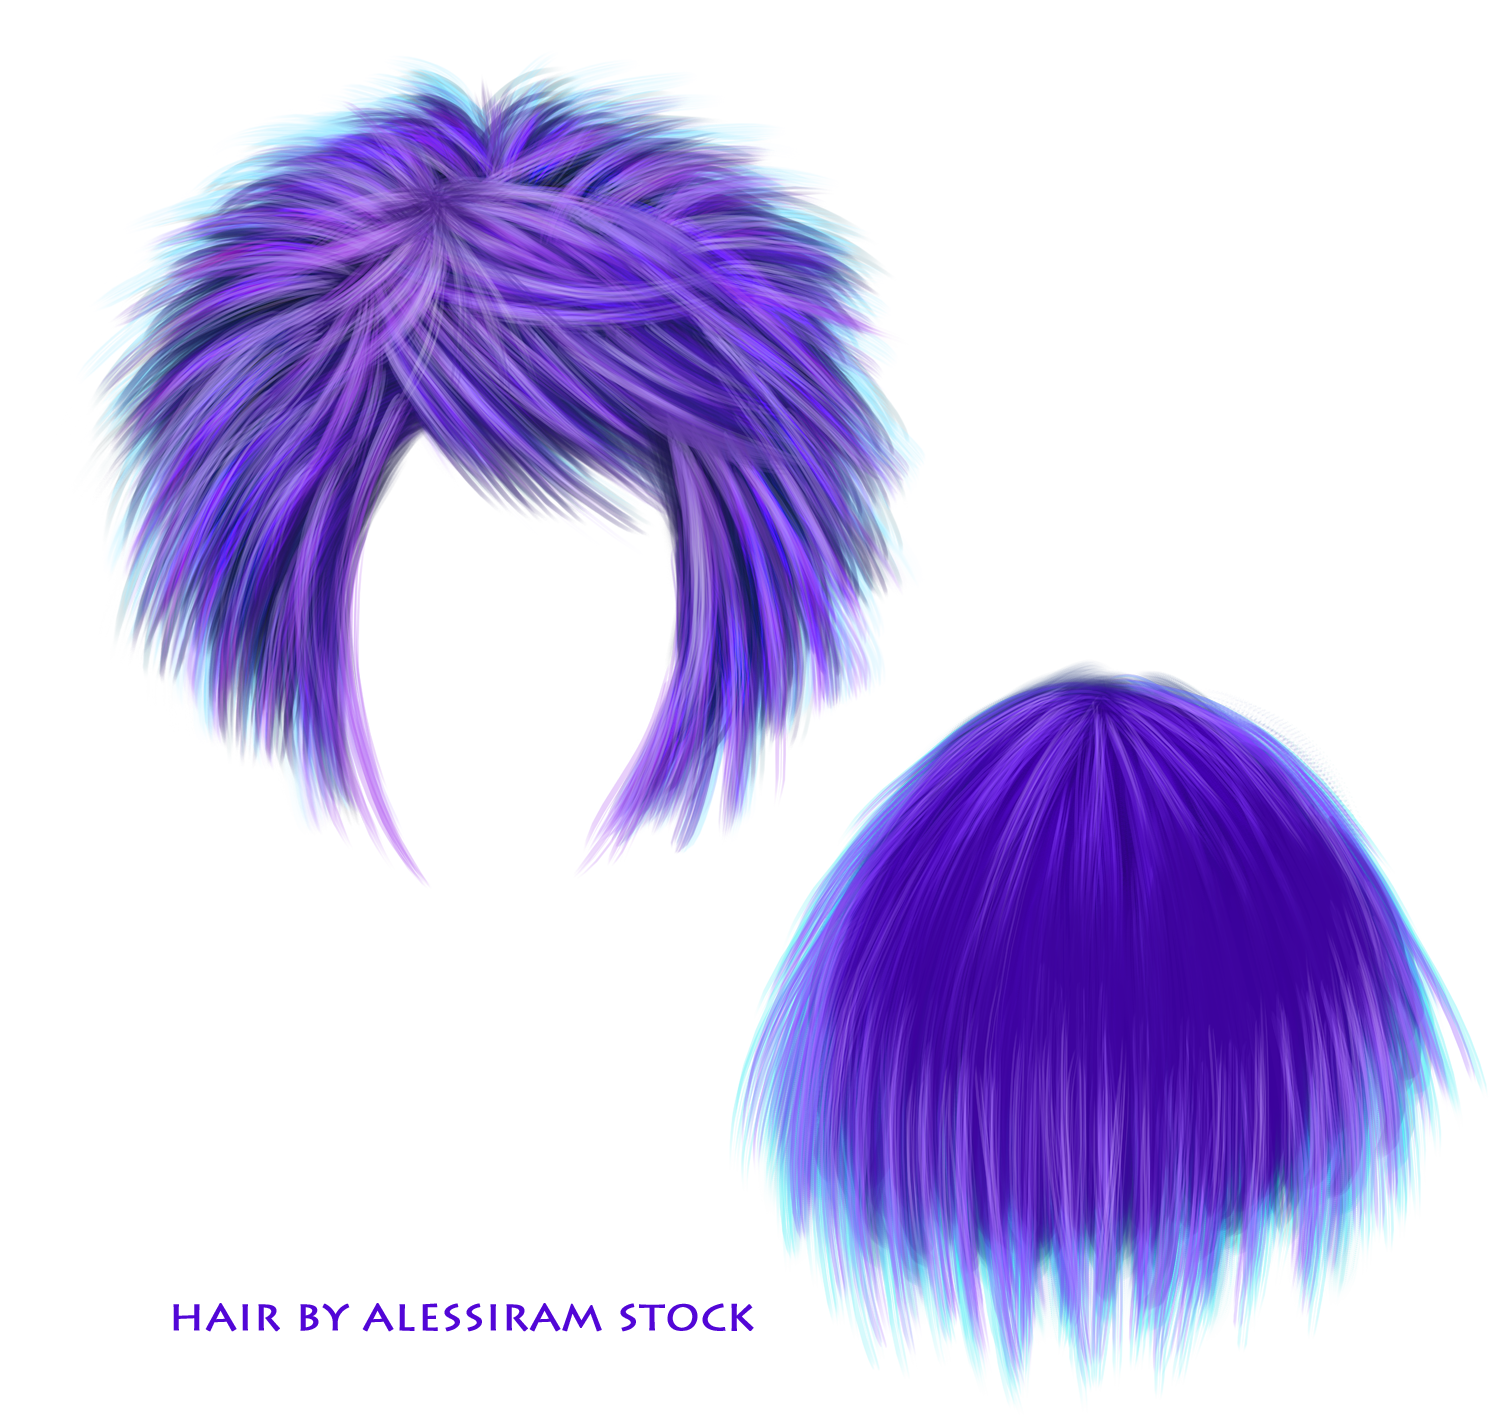 Mohawk Hair Png - Hair Resources Stock Png By Piknicx Hair Resources Stock Png By Piknicx, Transparent background PNG HD thumbnail